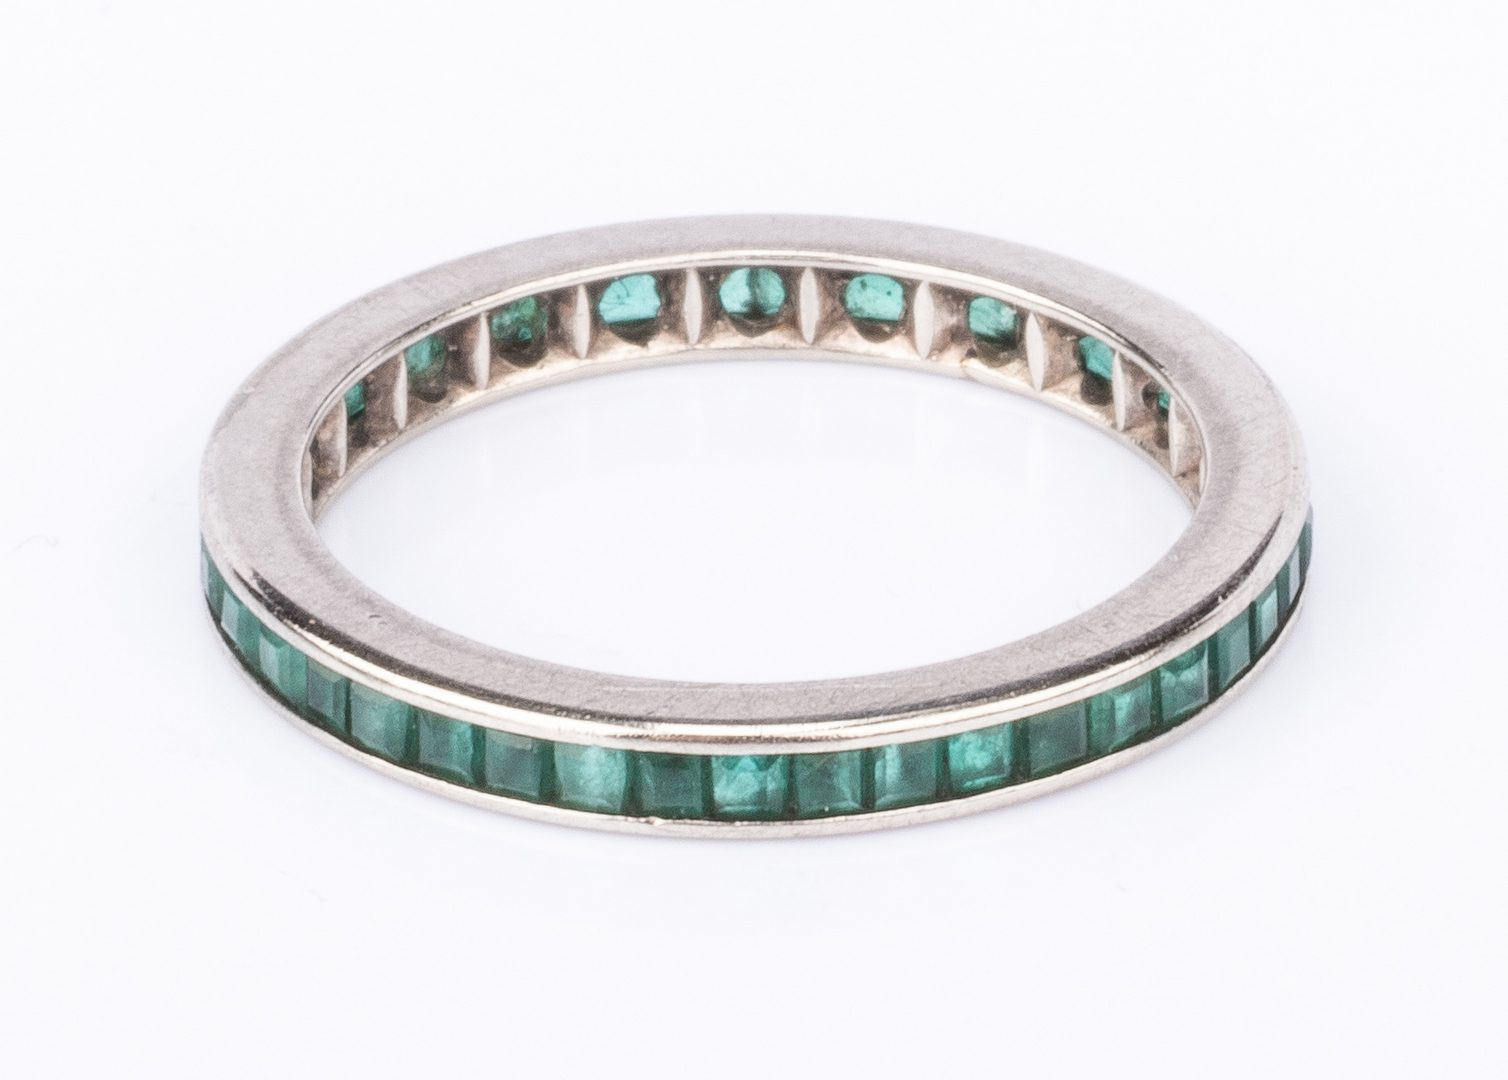 Lot 378: 14K Emerald Band and Italian Bracelet, 2 items